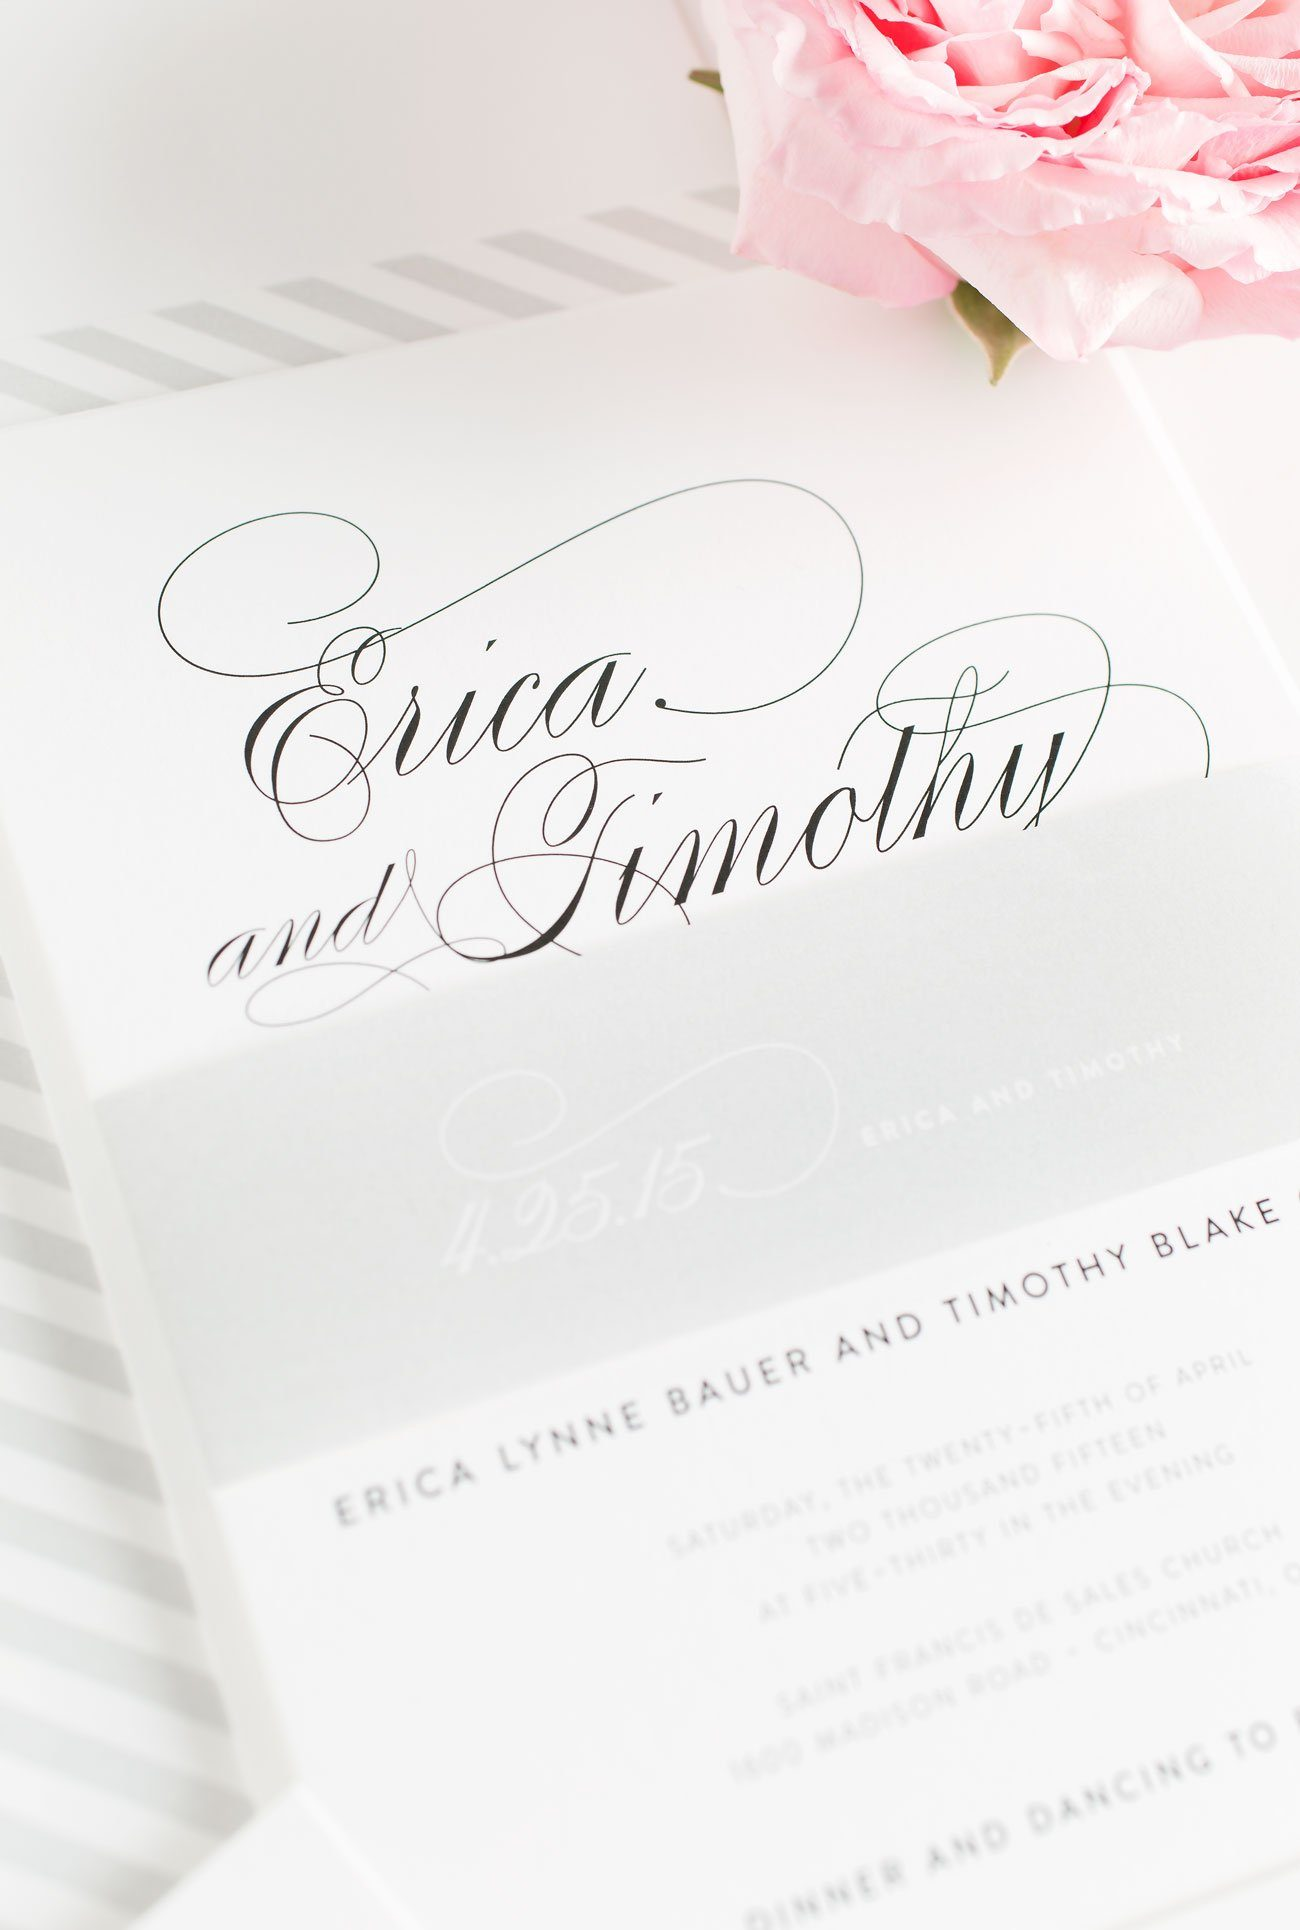 Calligraphy Wedding Invitations with Gray Accents